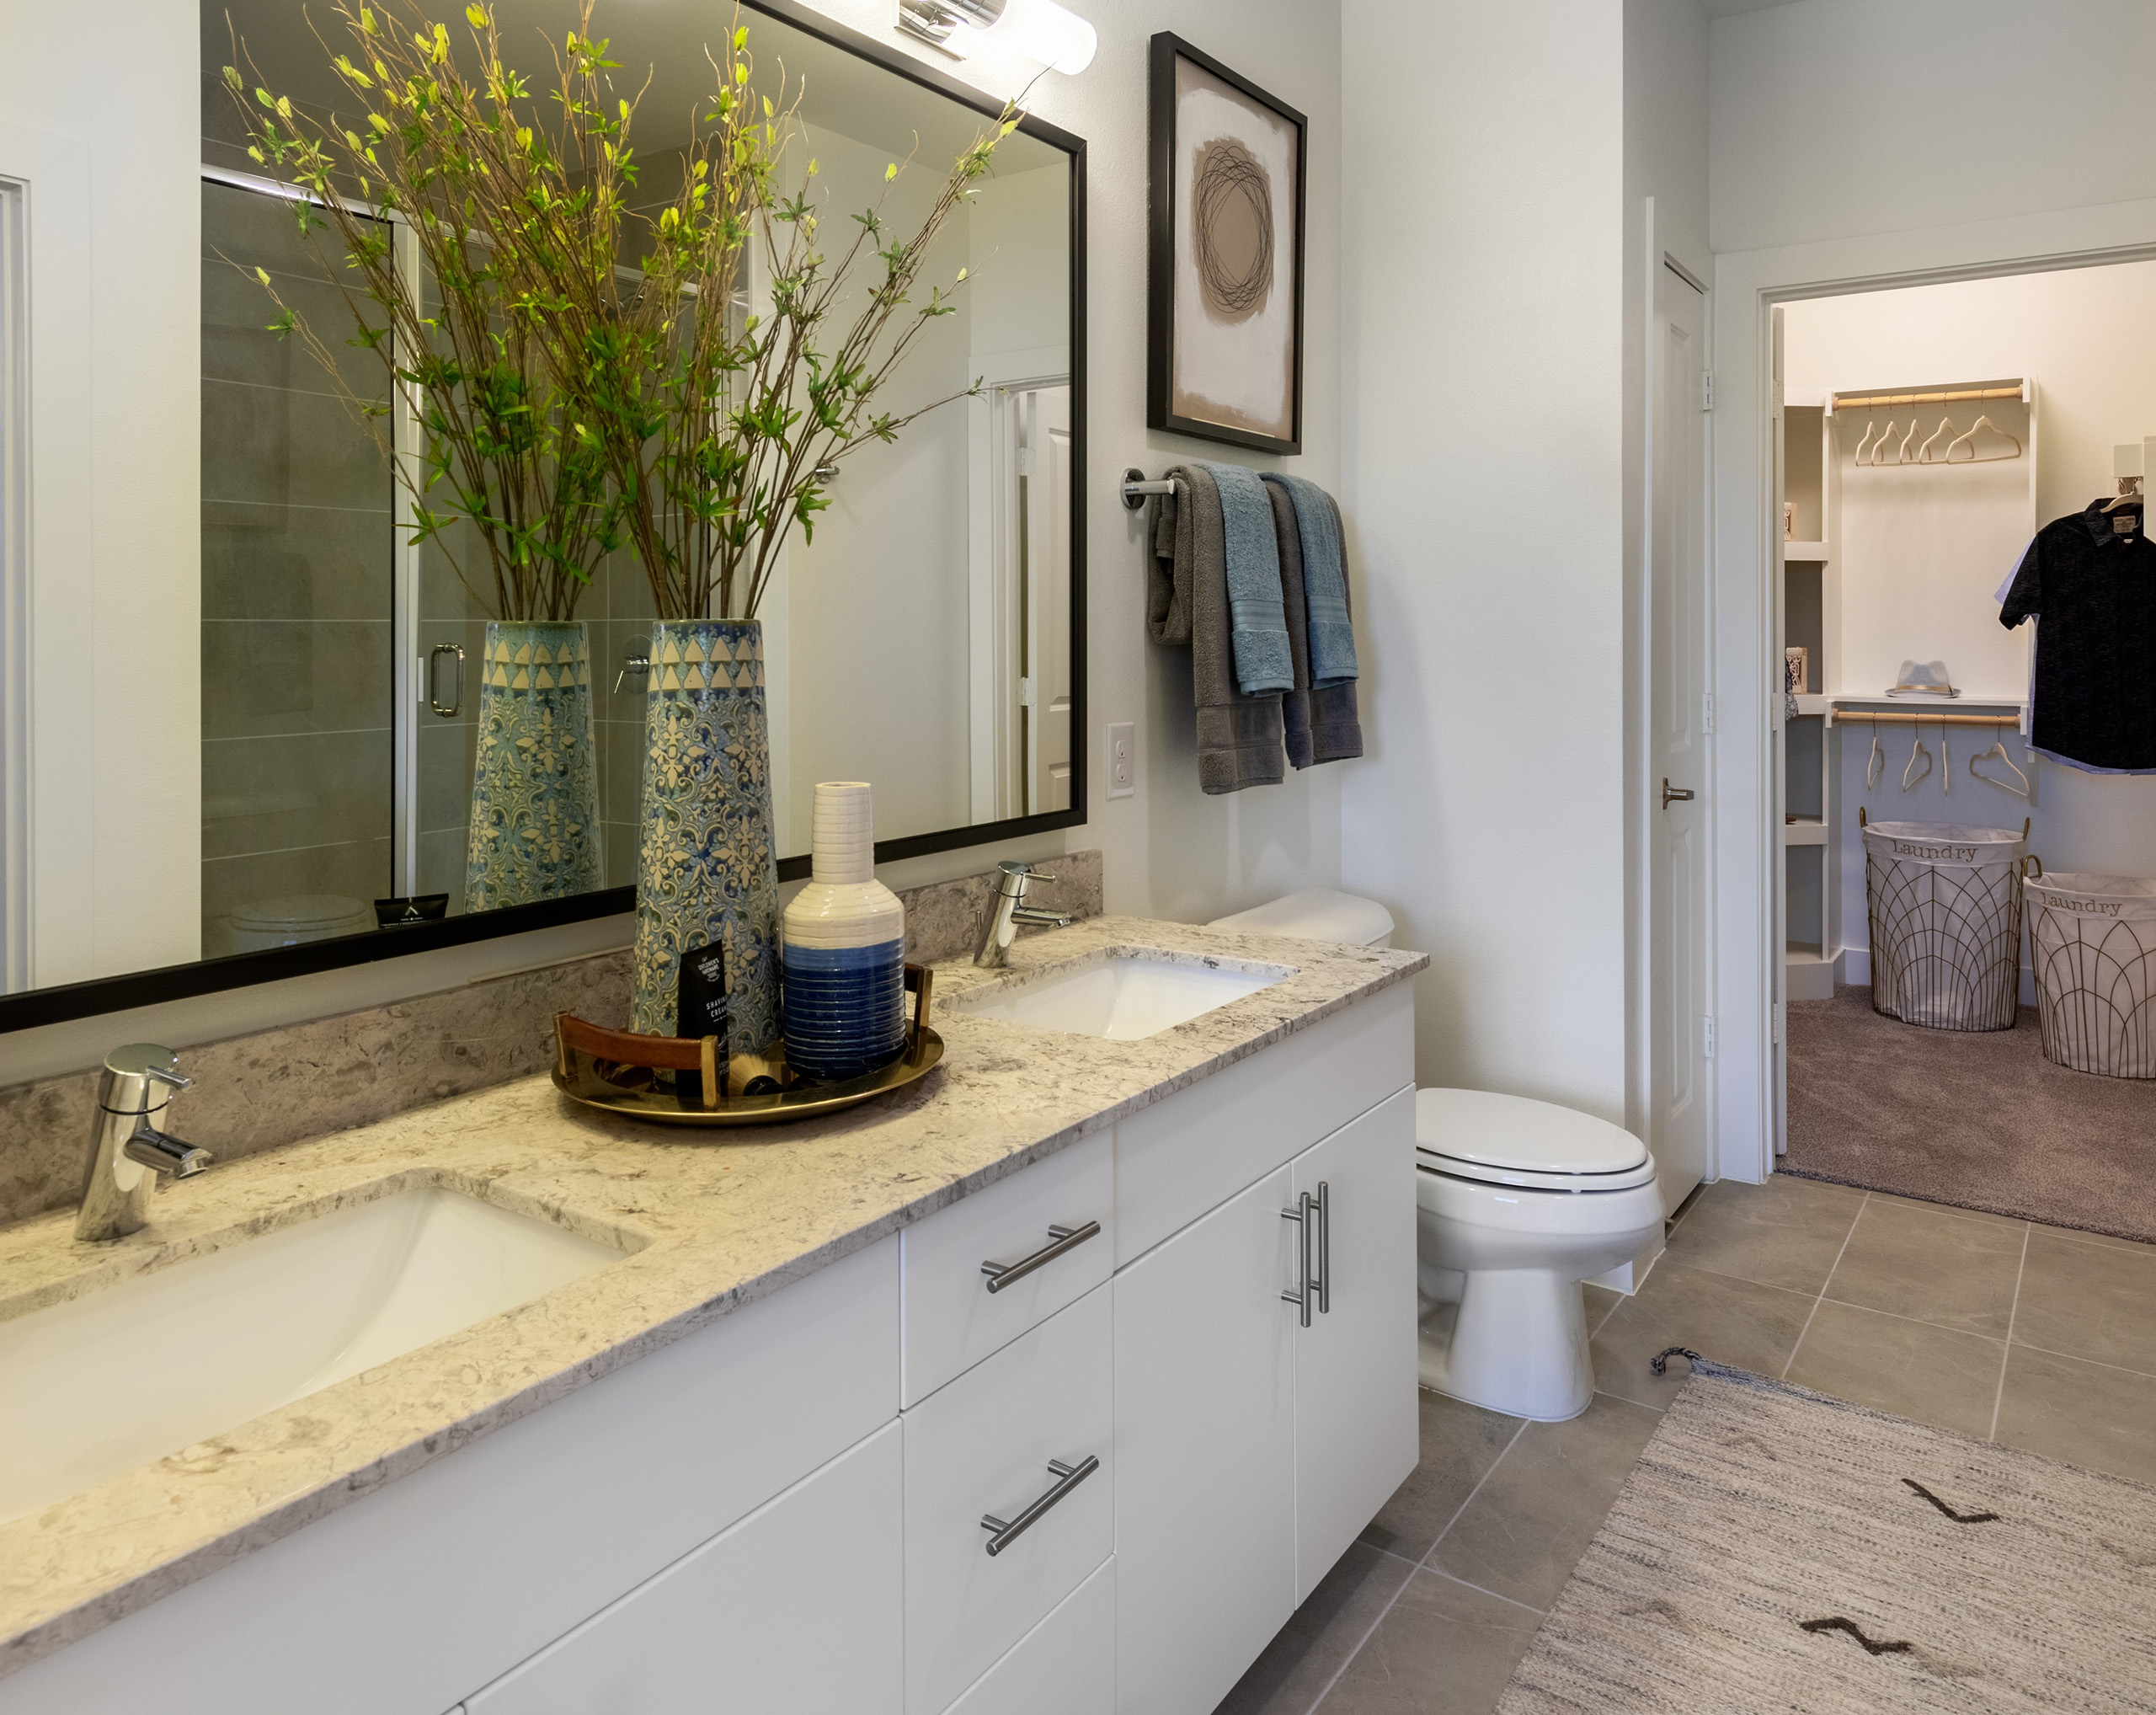 Interior view of AMLI Grapevine apartment bathroom with white granite countertops and a double vanity and a walk-in closet